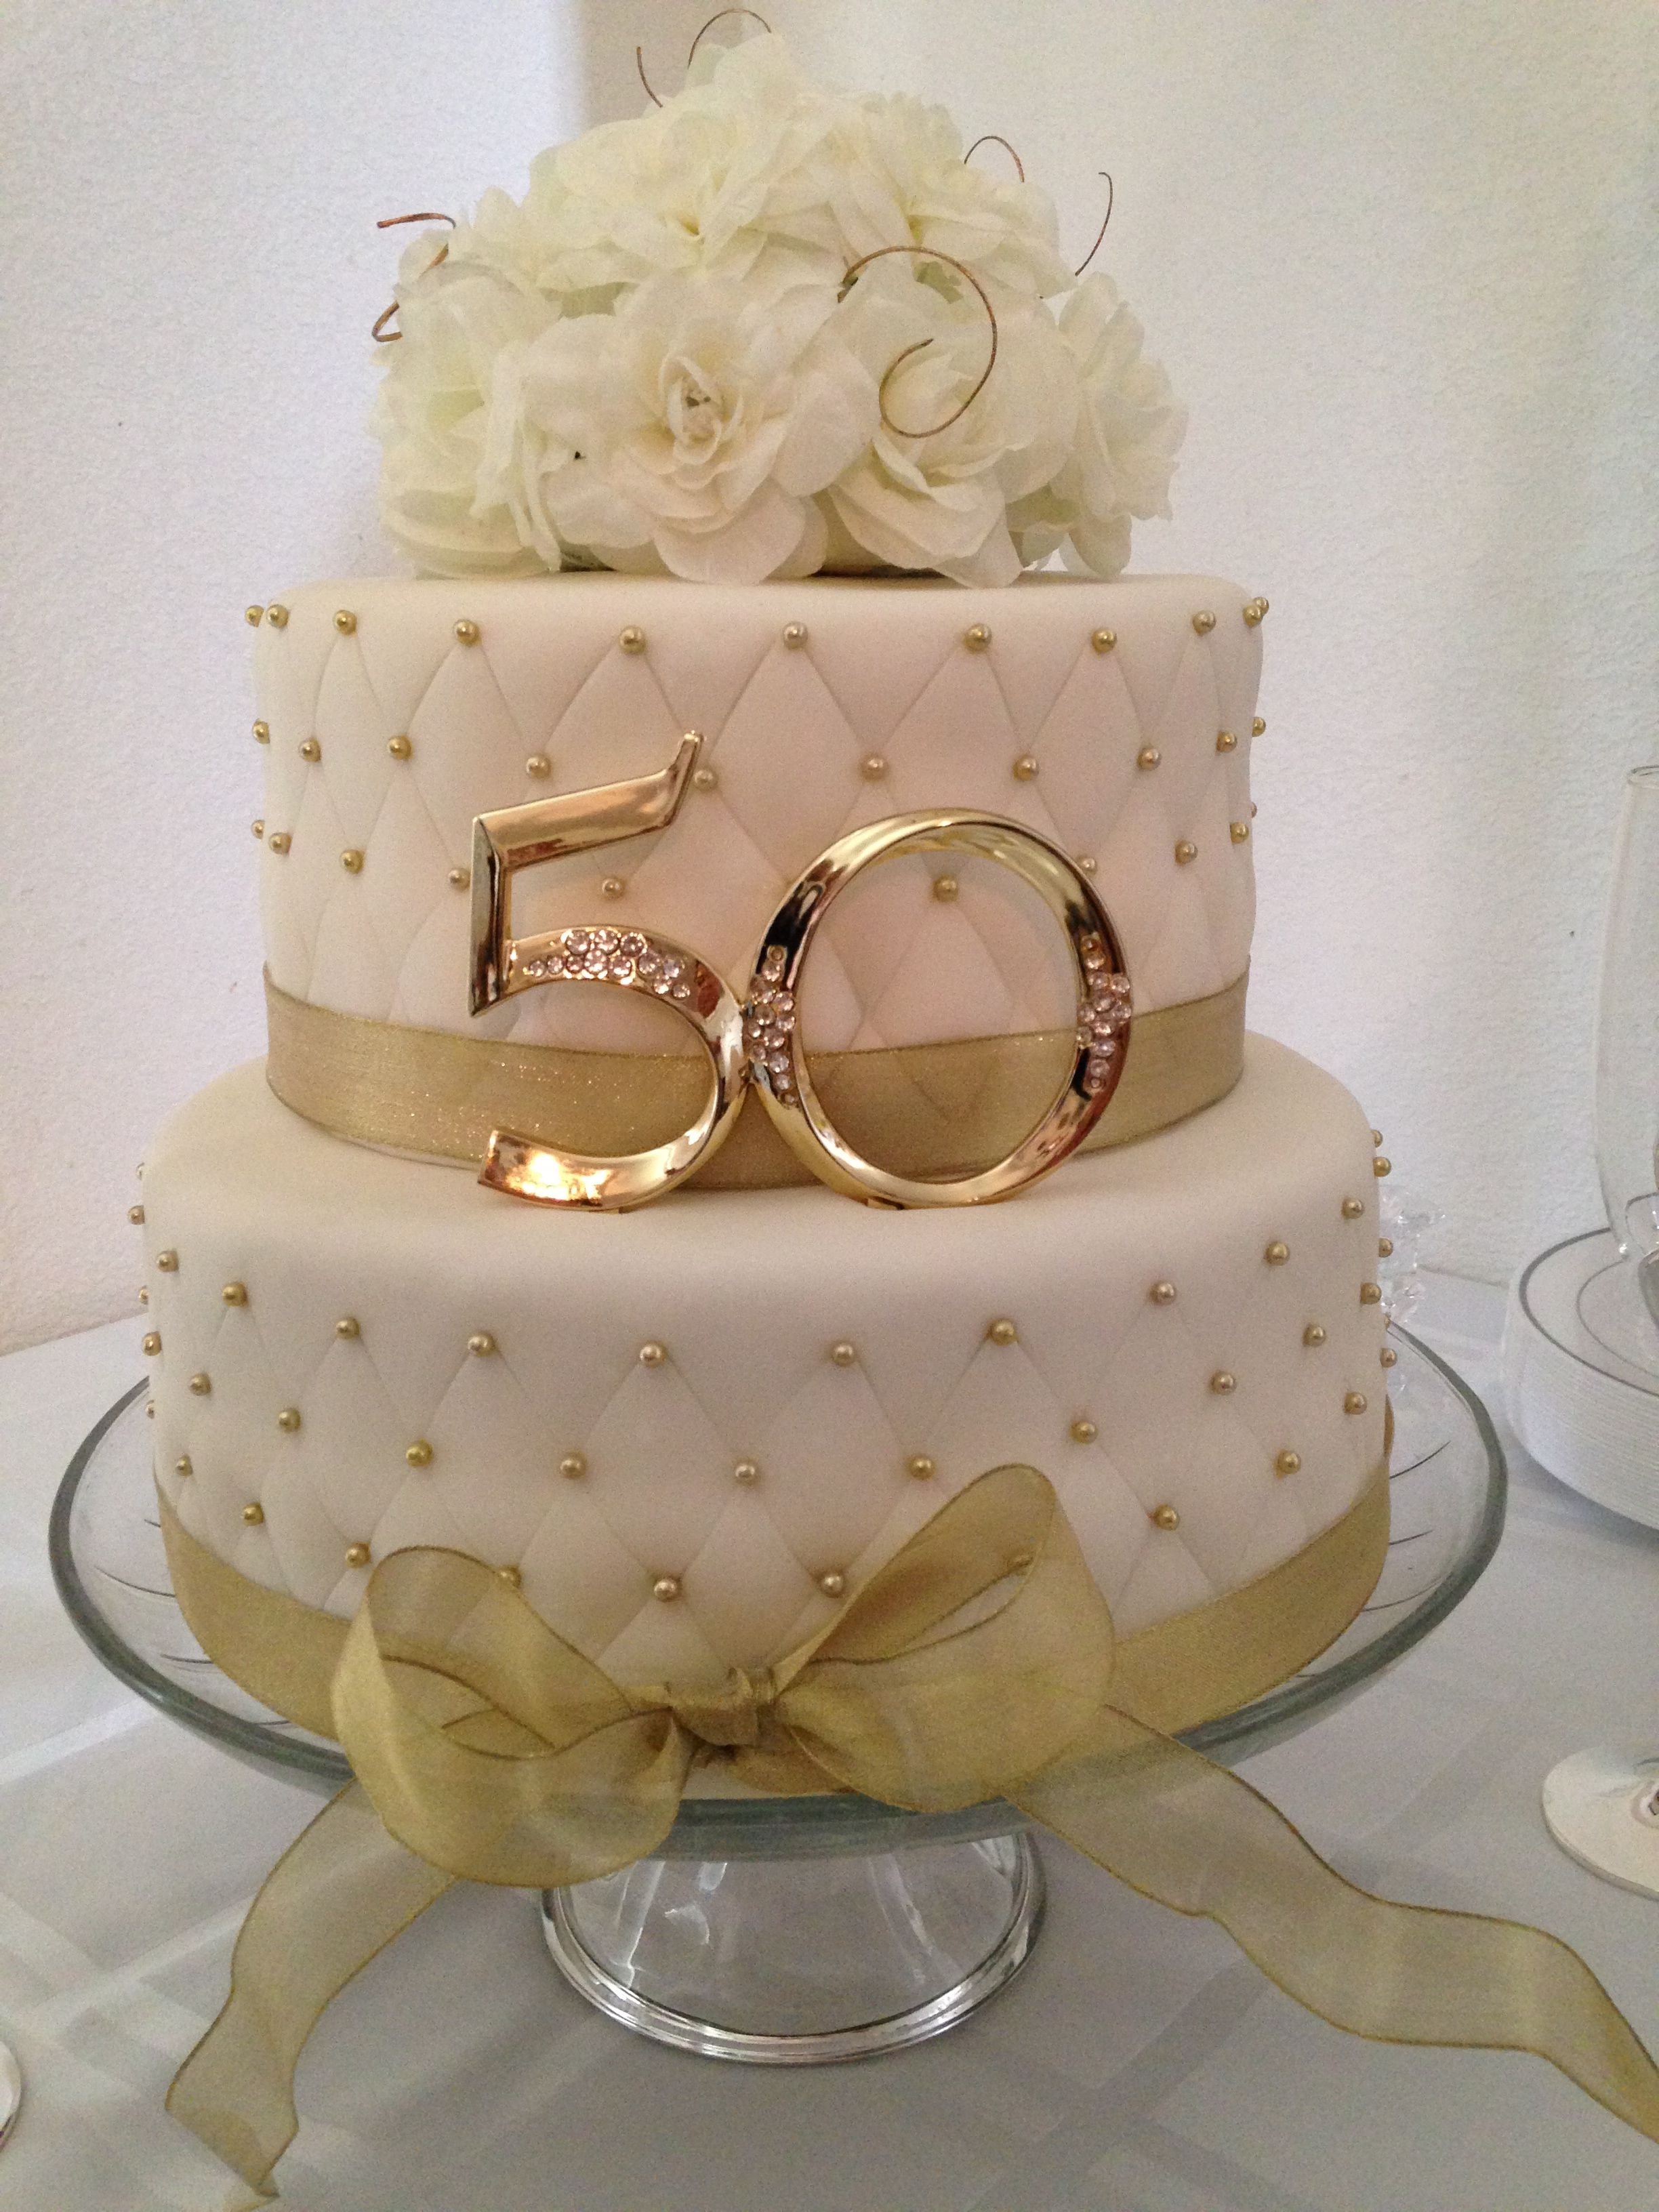 50th Anniversary Cakes